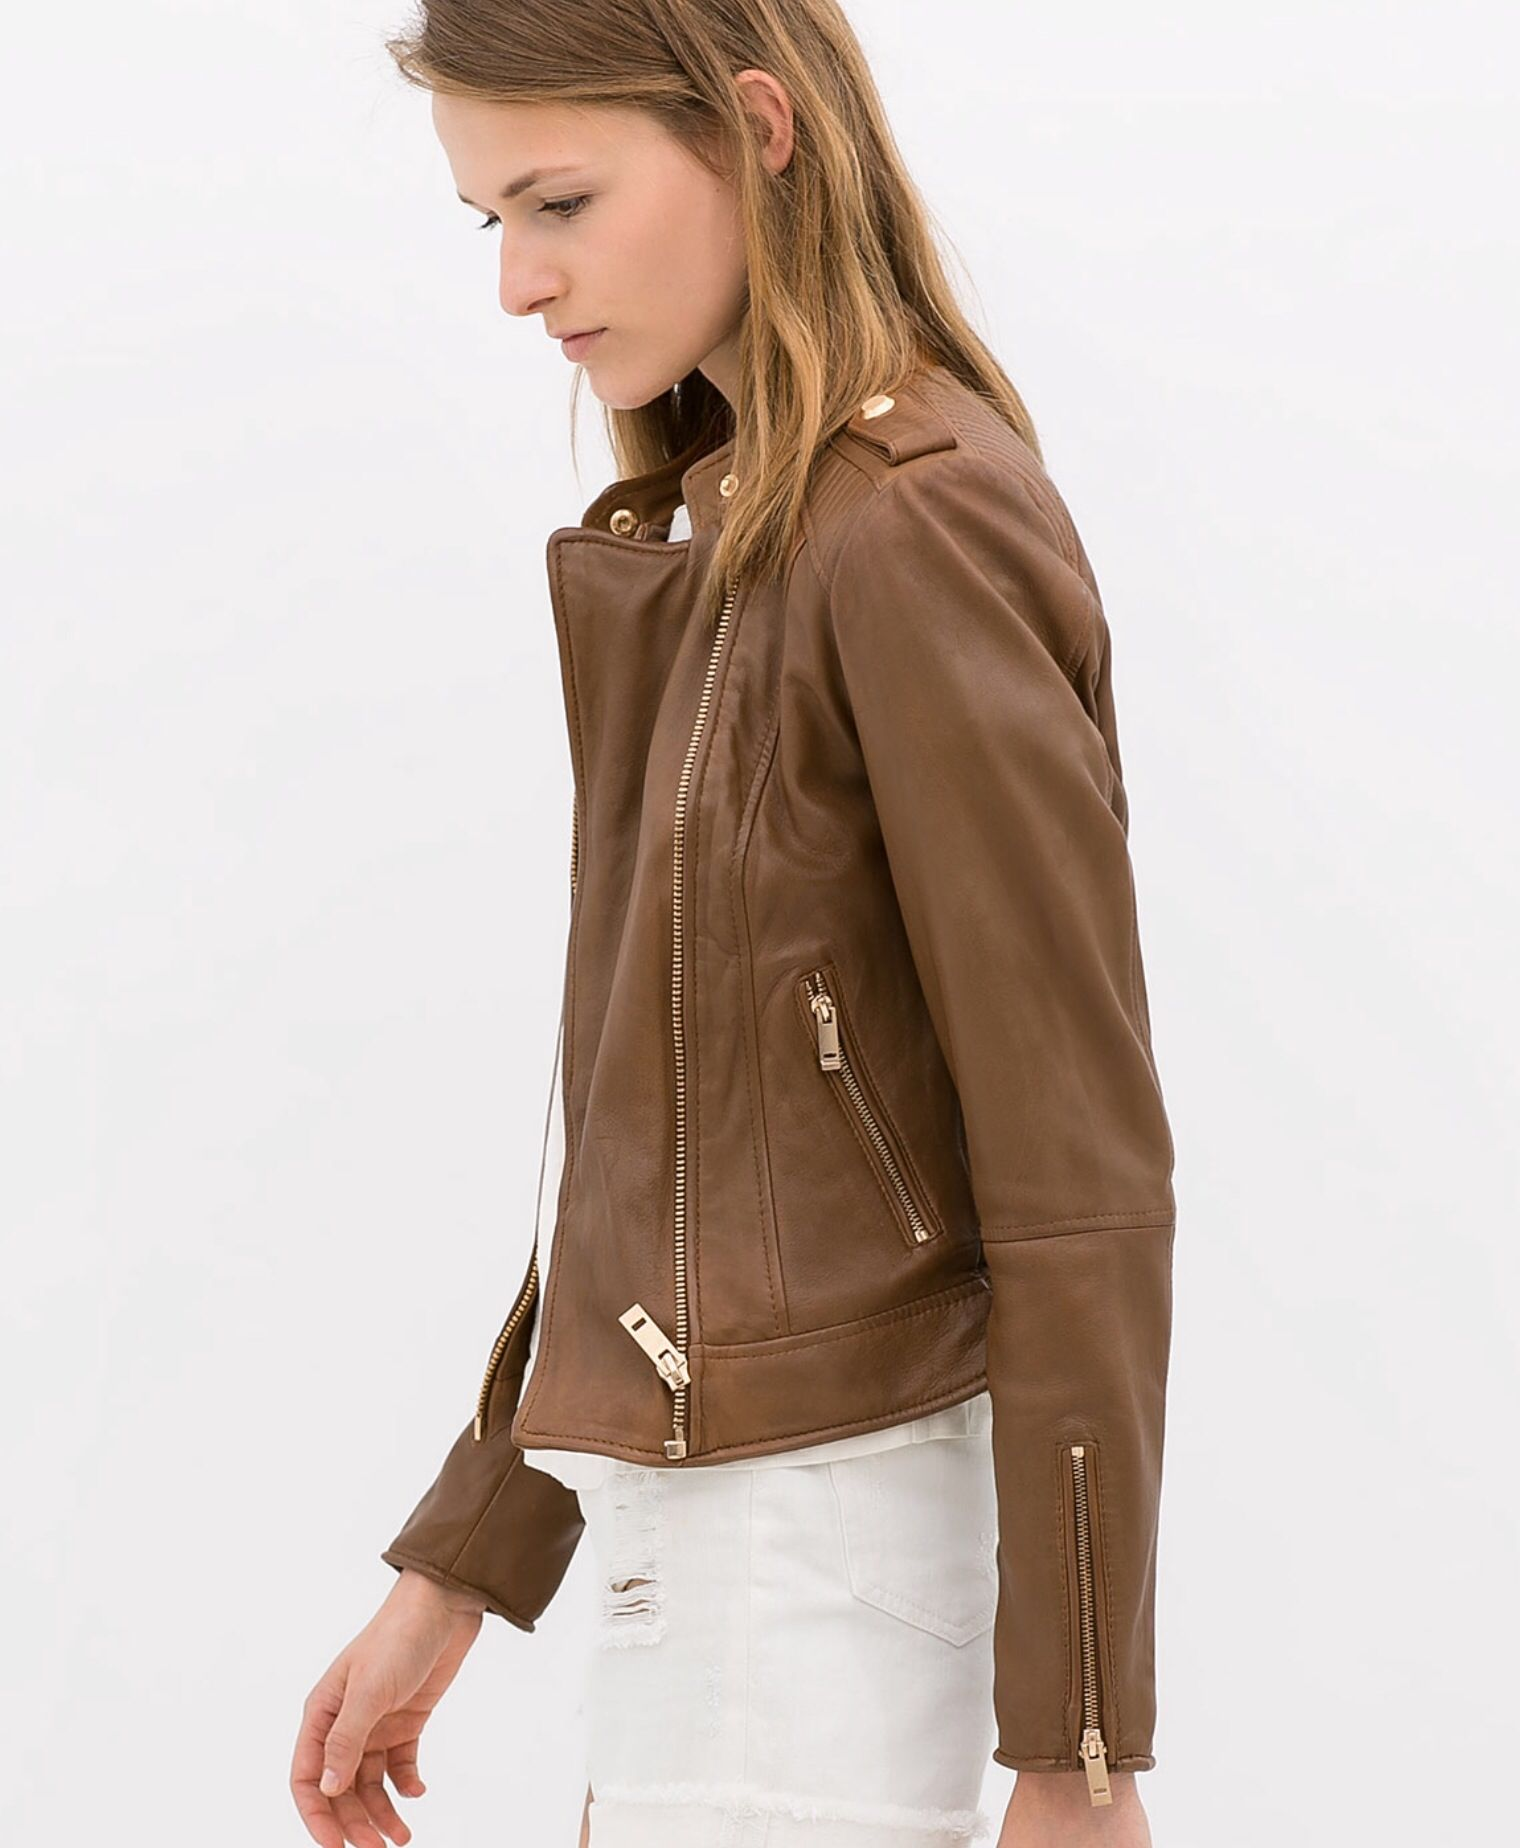 Zara tan leather jacket + gold hardware Zara leather